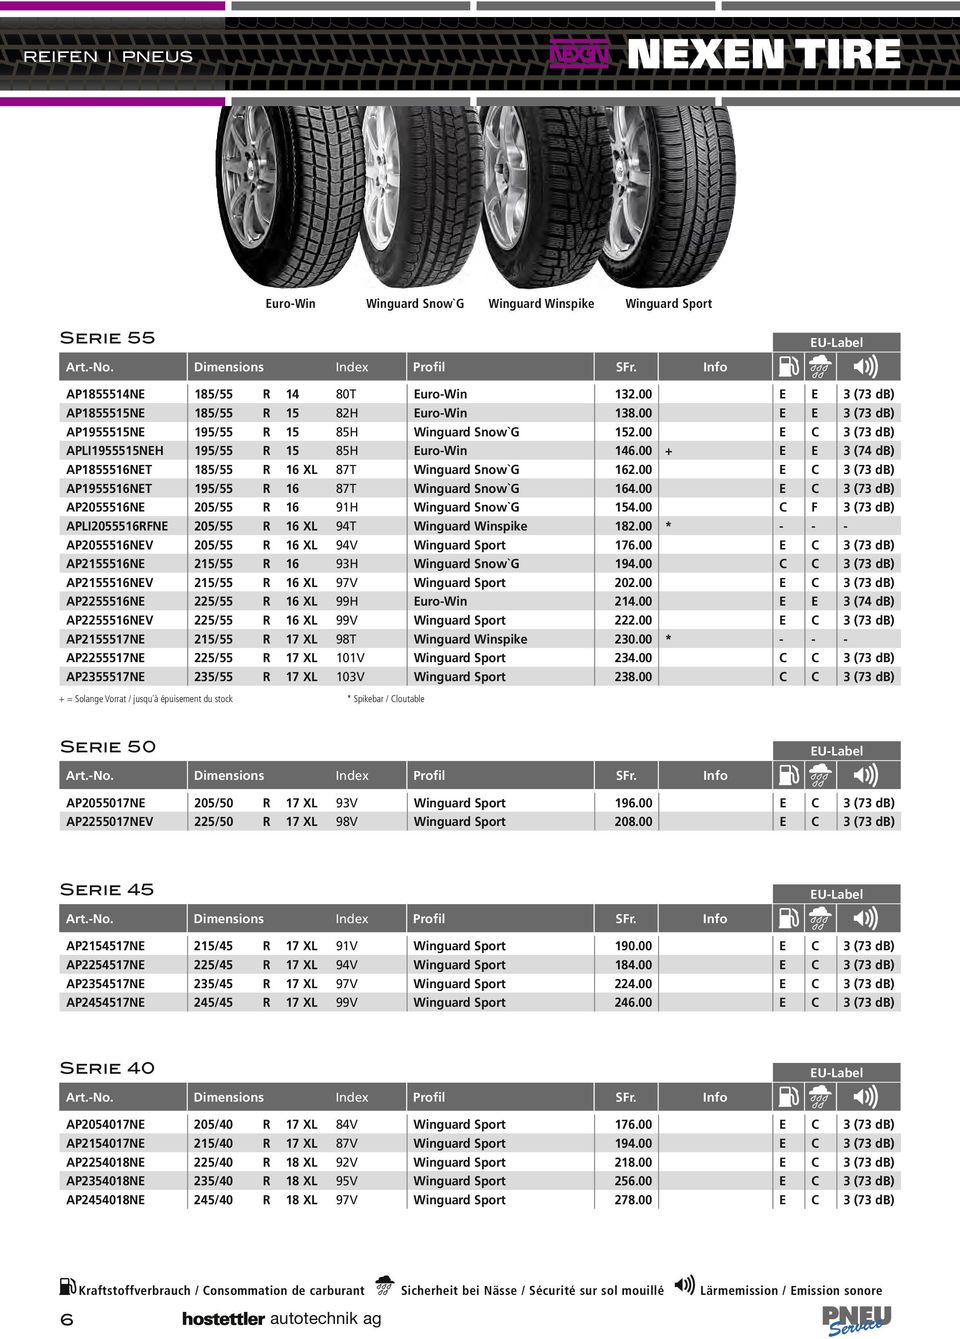 00 E C 3 (73 db) AP1955516NET 195/55 R 16 87T Winguard Snow`G 164.00 E C 3 (73 db) AP2055516NE 205/55 R 16 91H Winguard Snow`G 154.